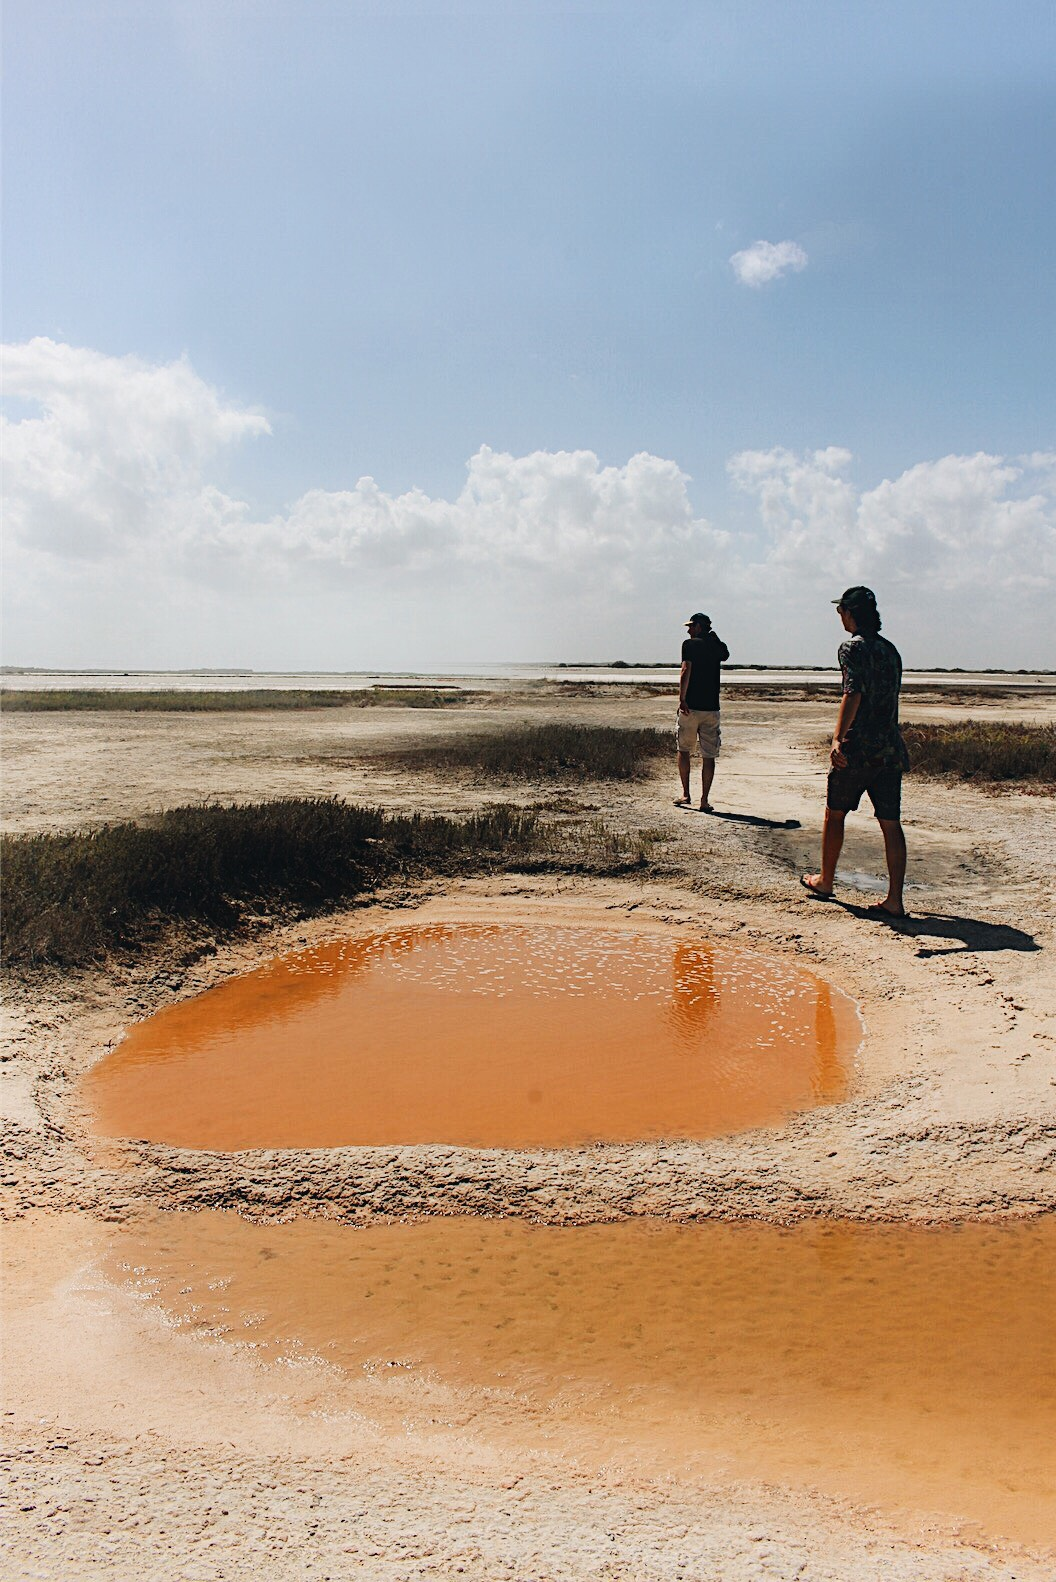 Lost in another world - Las Coloradas